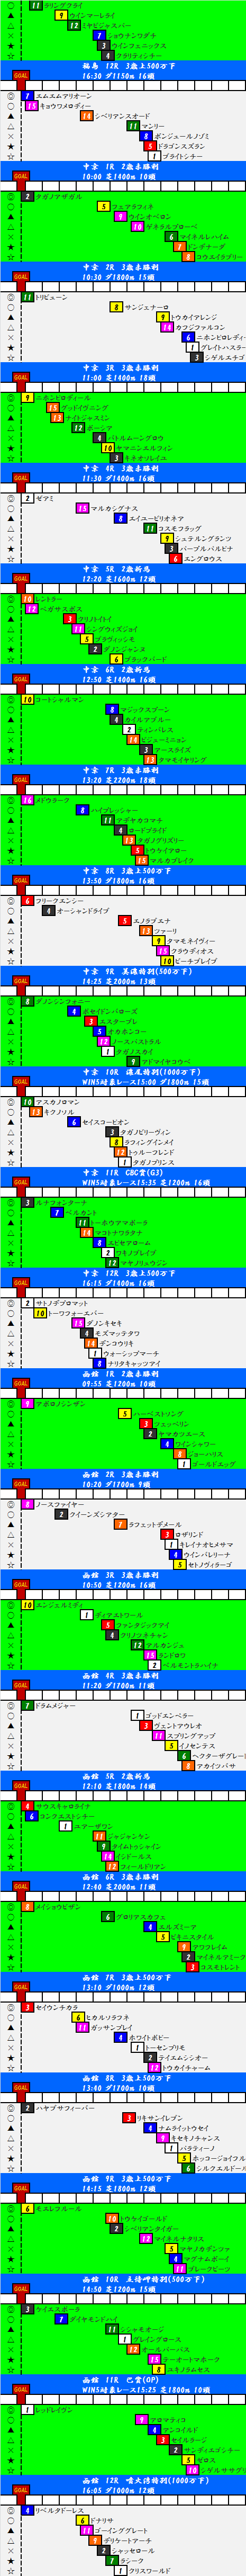 201407062.png